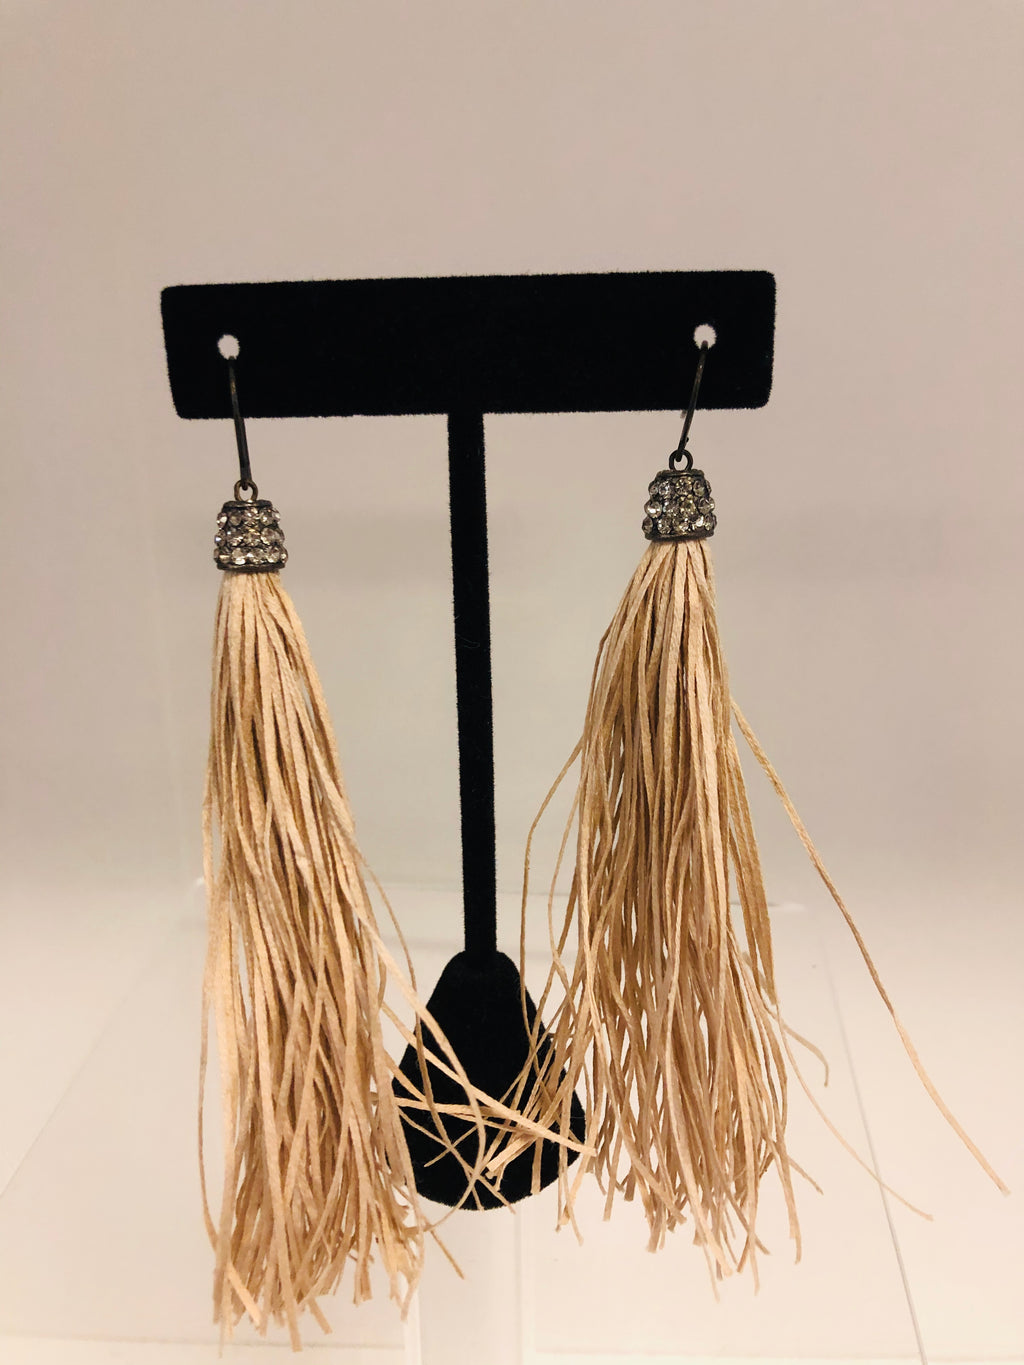 Yarn Tassel Earrings/Blk Diamond Crystals